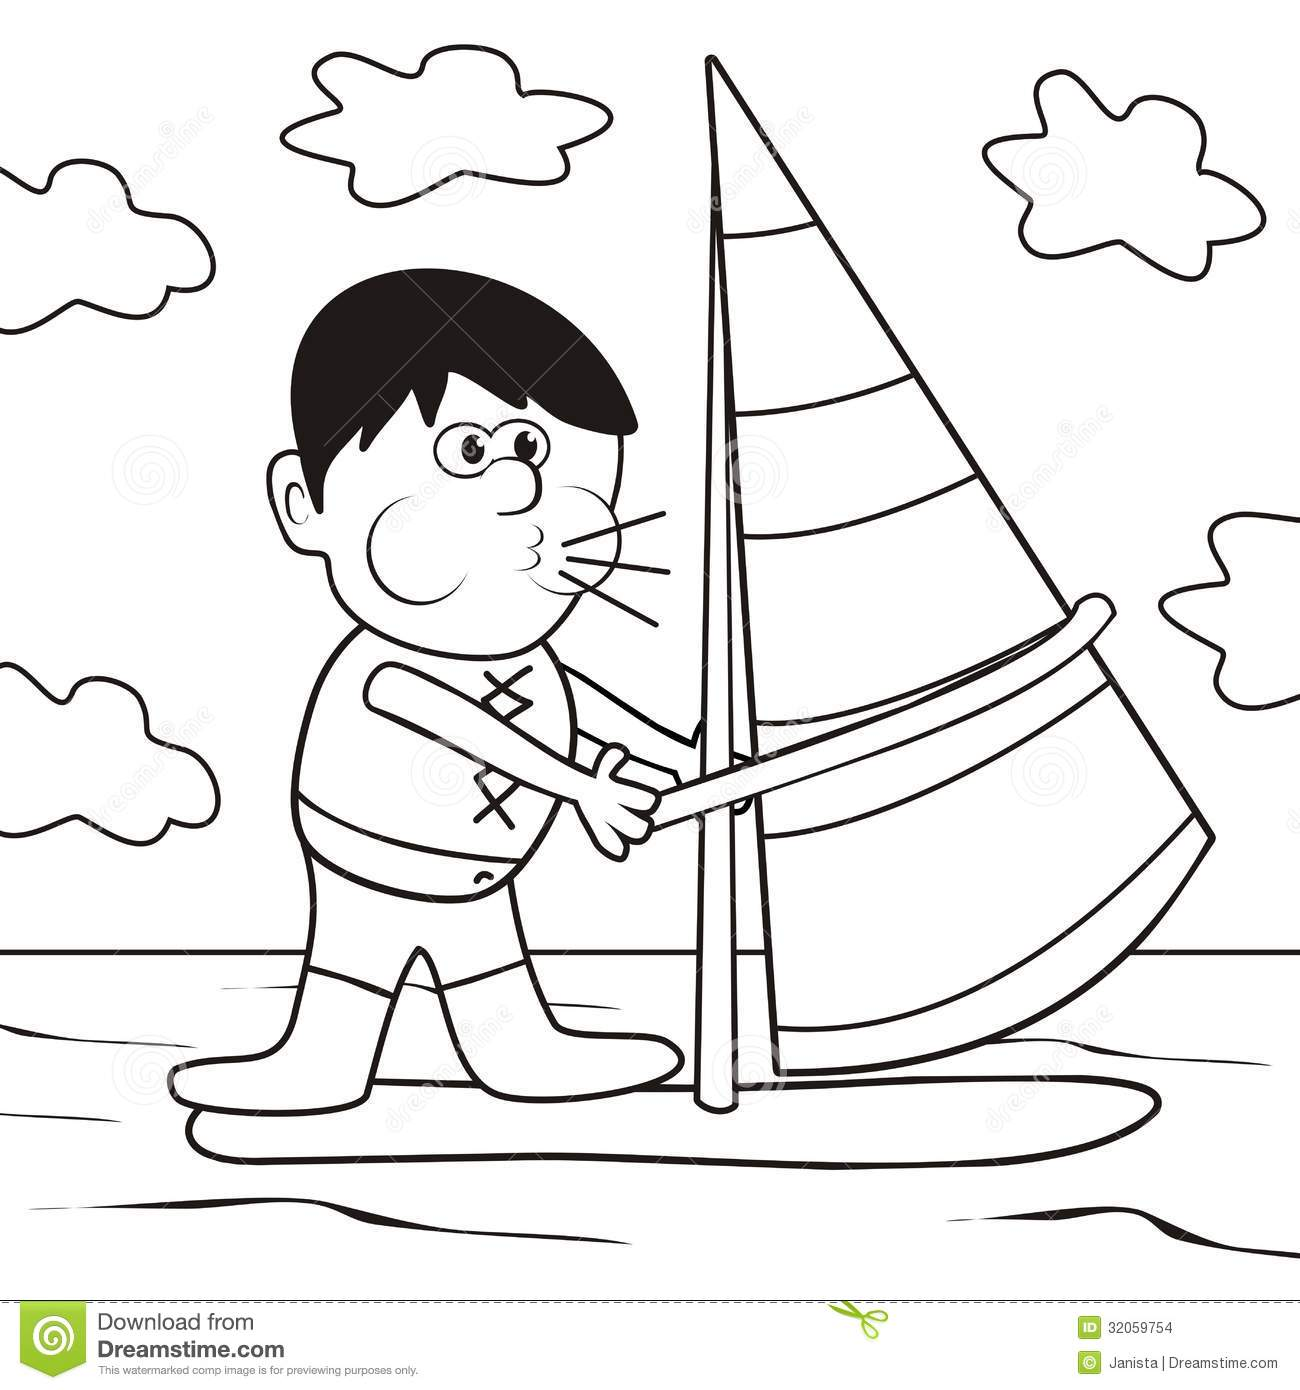 windsurfing coloring book - Colouring Books For Children